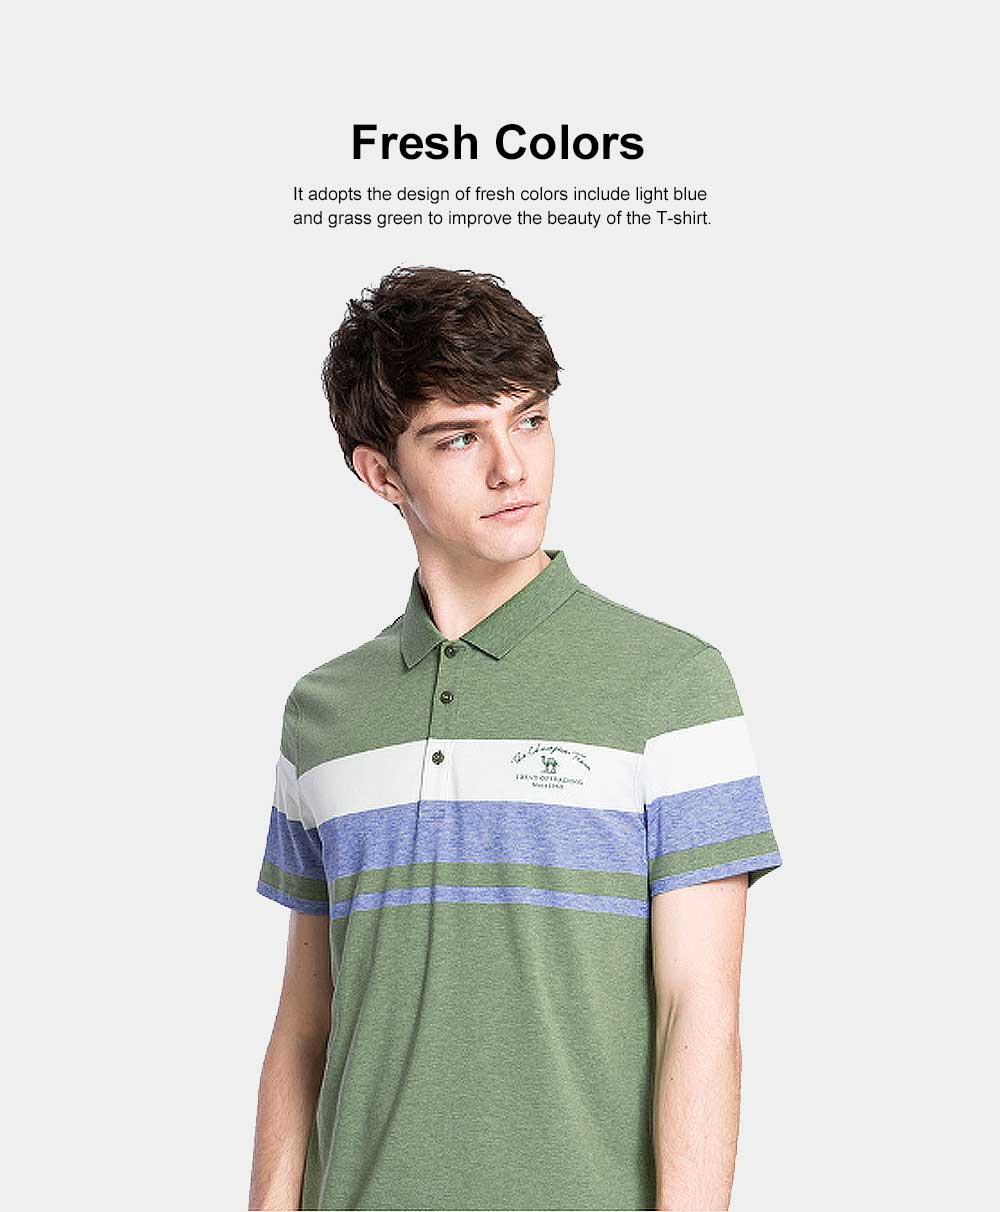 Cool Contrast Tops for Men, Recreational Edition Short-sleeve Polo, Breathable Spandex Cotton T-shirt 3